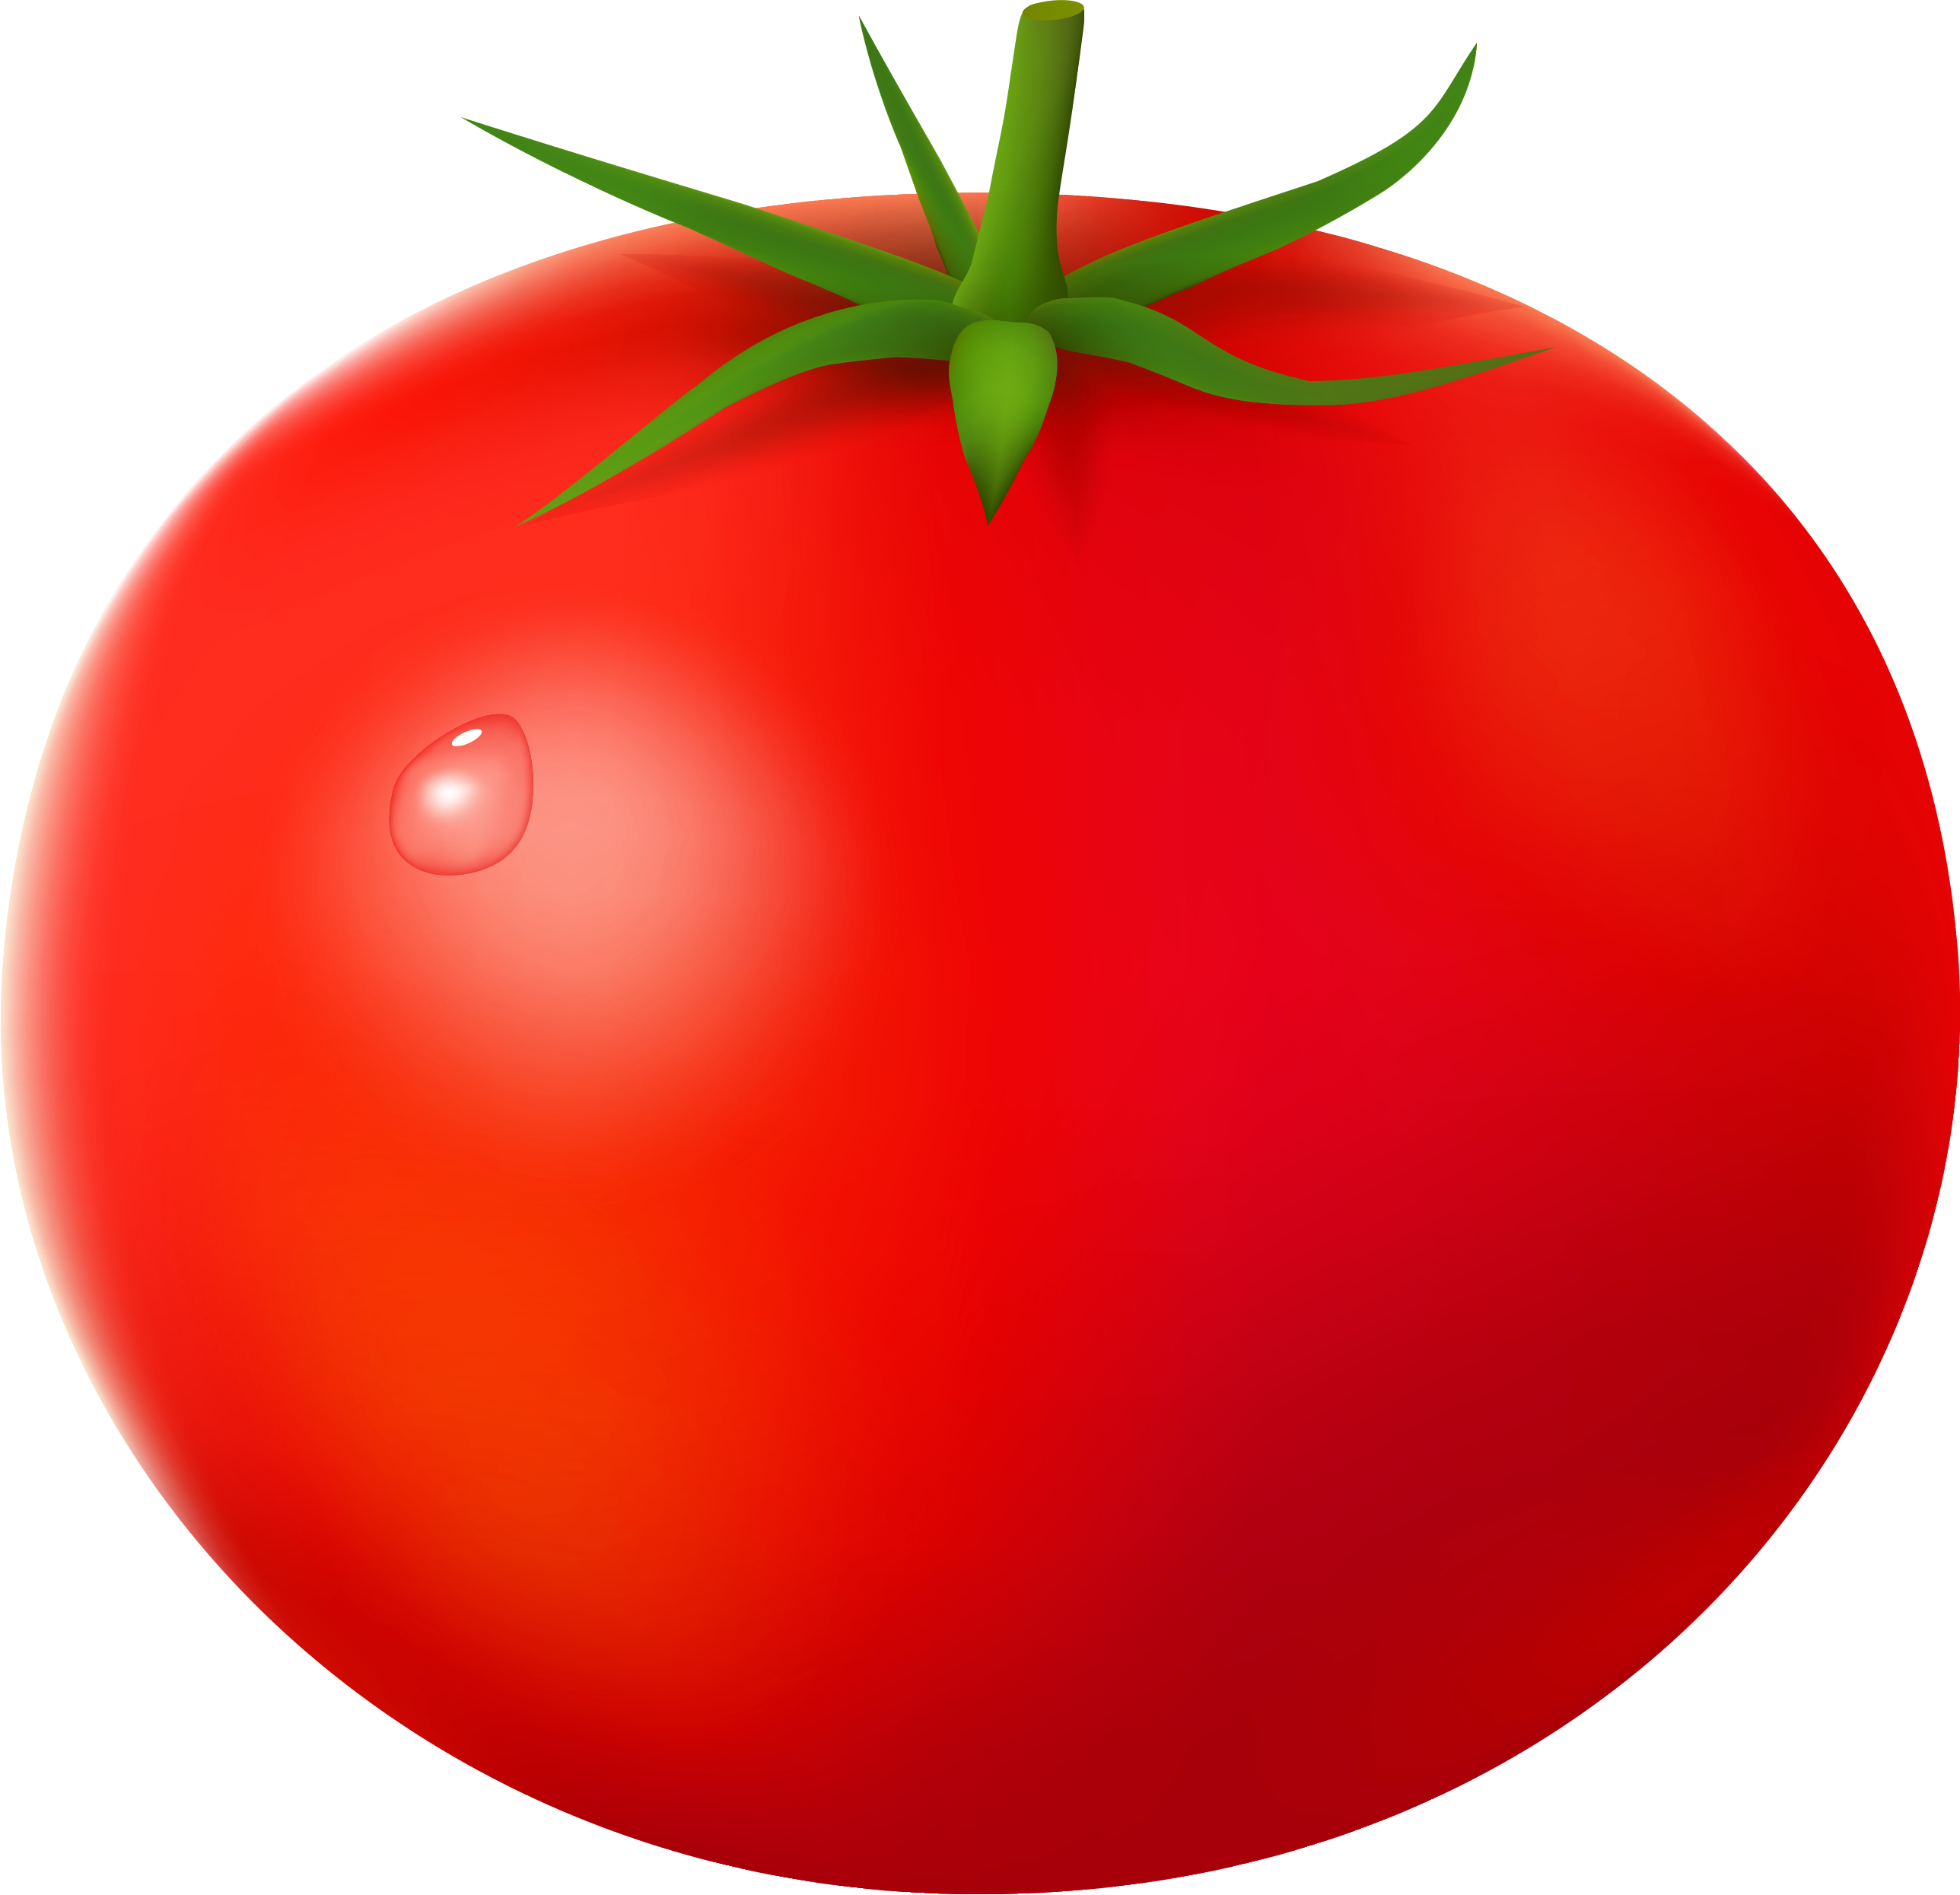 Tomato PNG - 4808